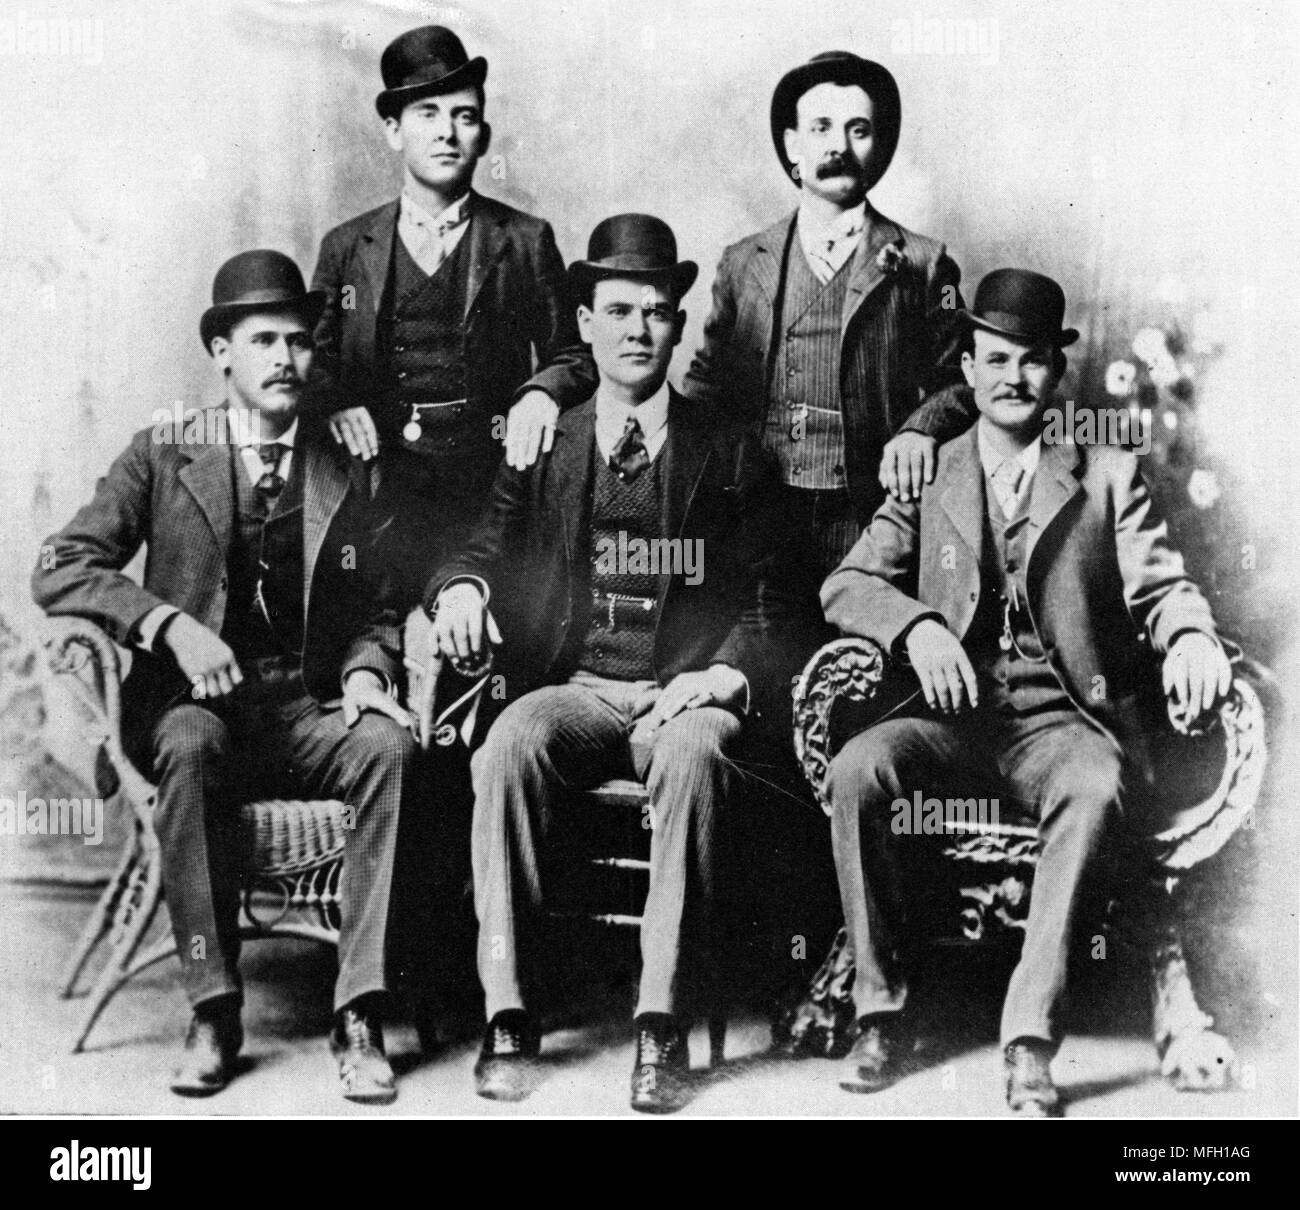 The Wild Bunch, 1900 photo of the notorious gang of Butch Cassidy and the Sundance Kid, also known as the Hole-in-the-Wall Gang, the most successful train-robbing gang in history. This is known as the 'Fort Worth Five Photograph', Front row left to right: Harry A. Longabaugh (The Sundance Kid), Ben Kilpatrick (the Tall Texan), Robert Leroy Parker (Butch Cassidy); Standing: Will Carver, Harvey Logan (Kid Curry) - Stock Image